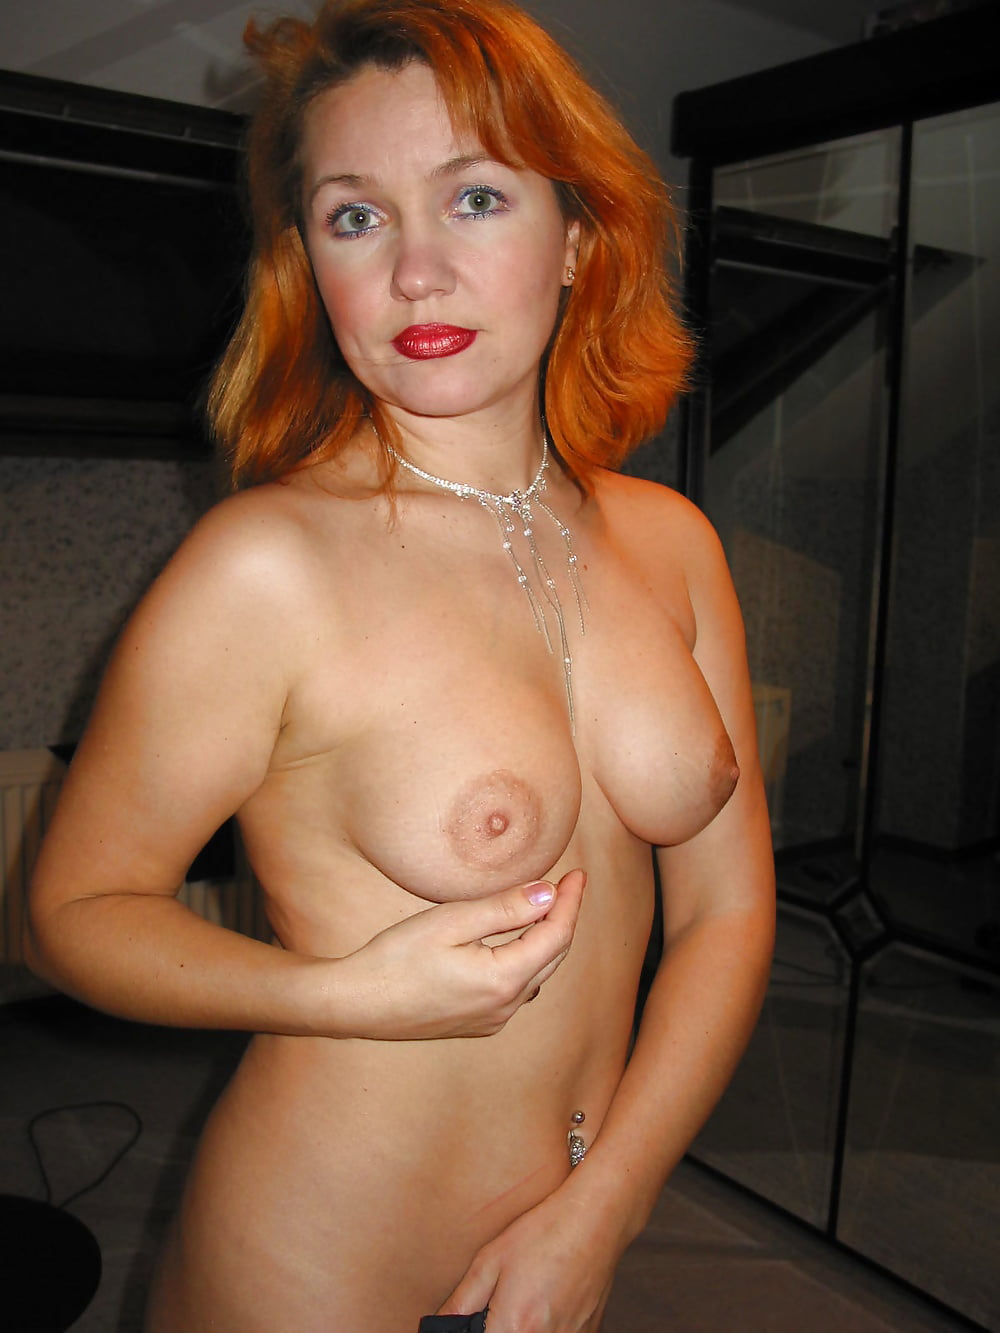 redhead-wife-nude-shows-cum-girls